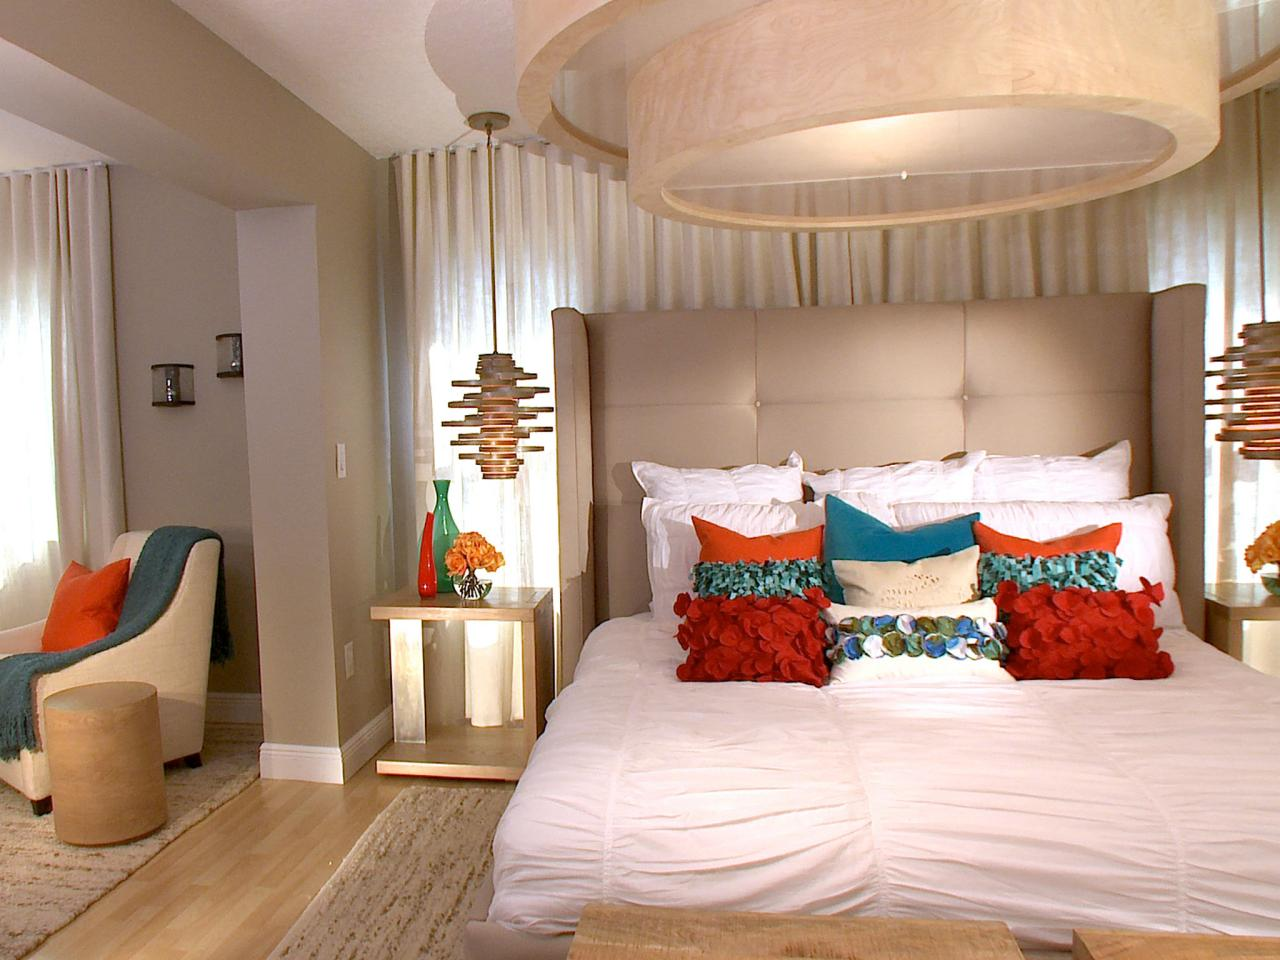 Simple bedroom ceiling lights - Bedroom Ceiling Design Ideas